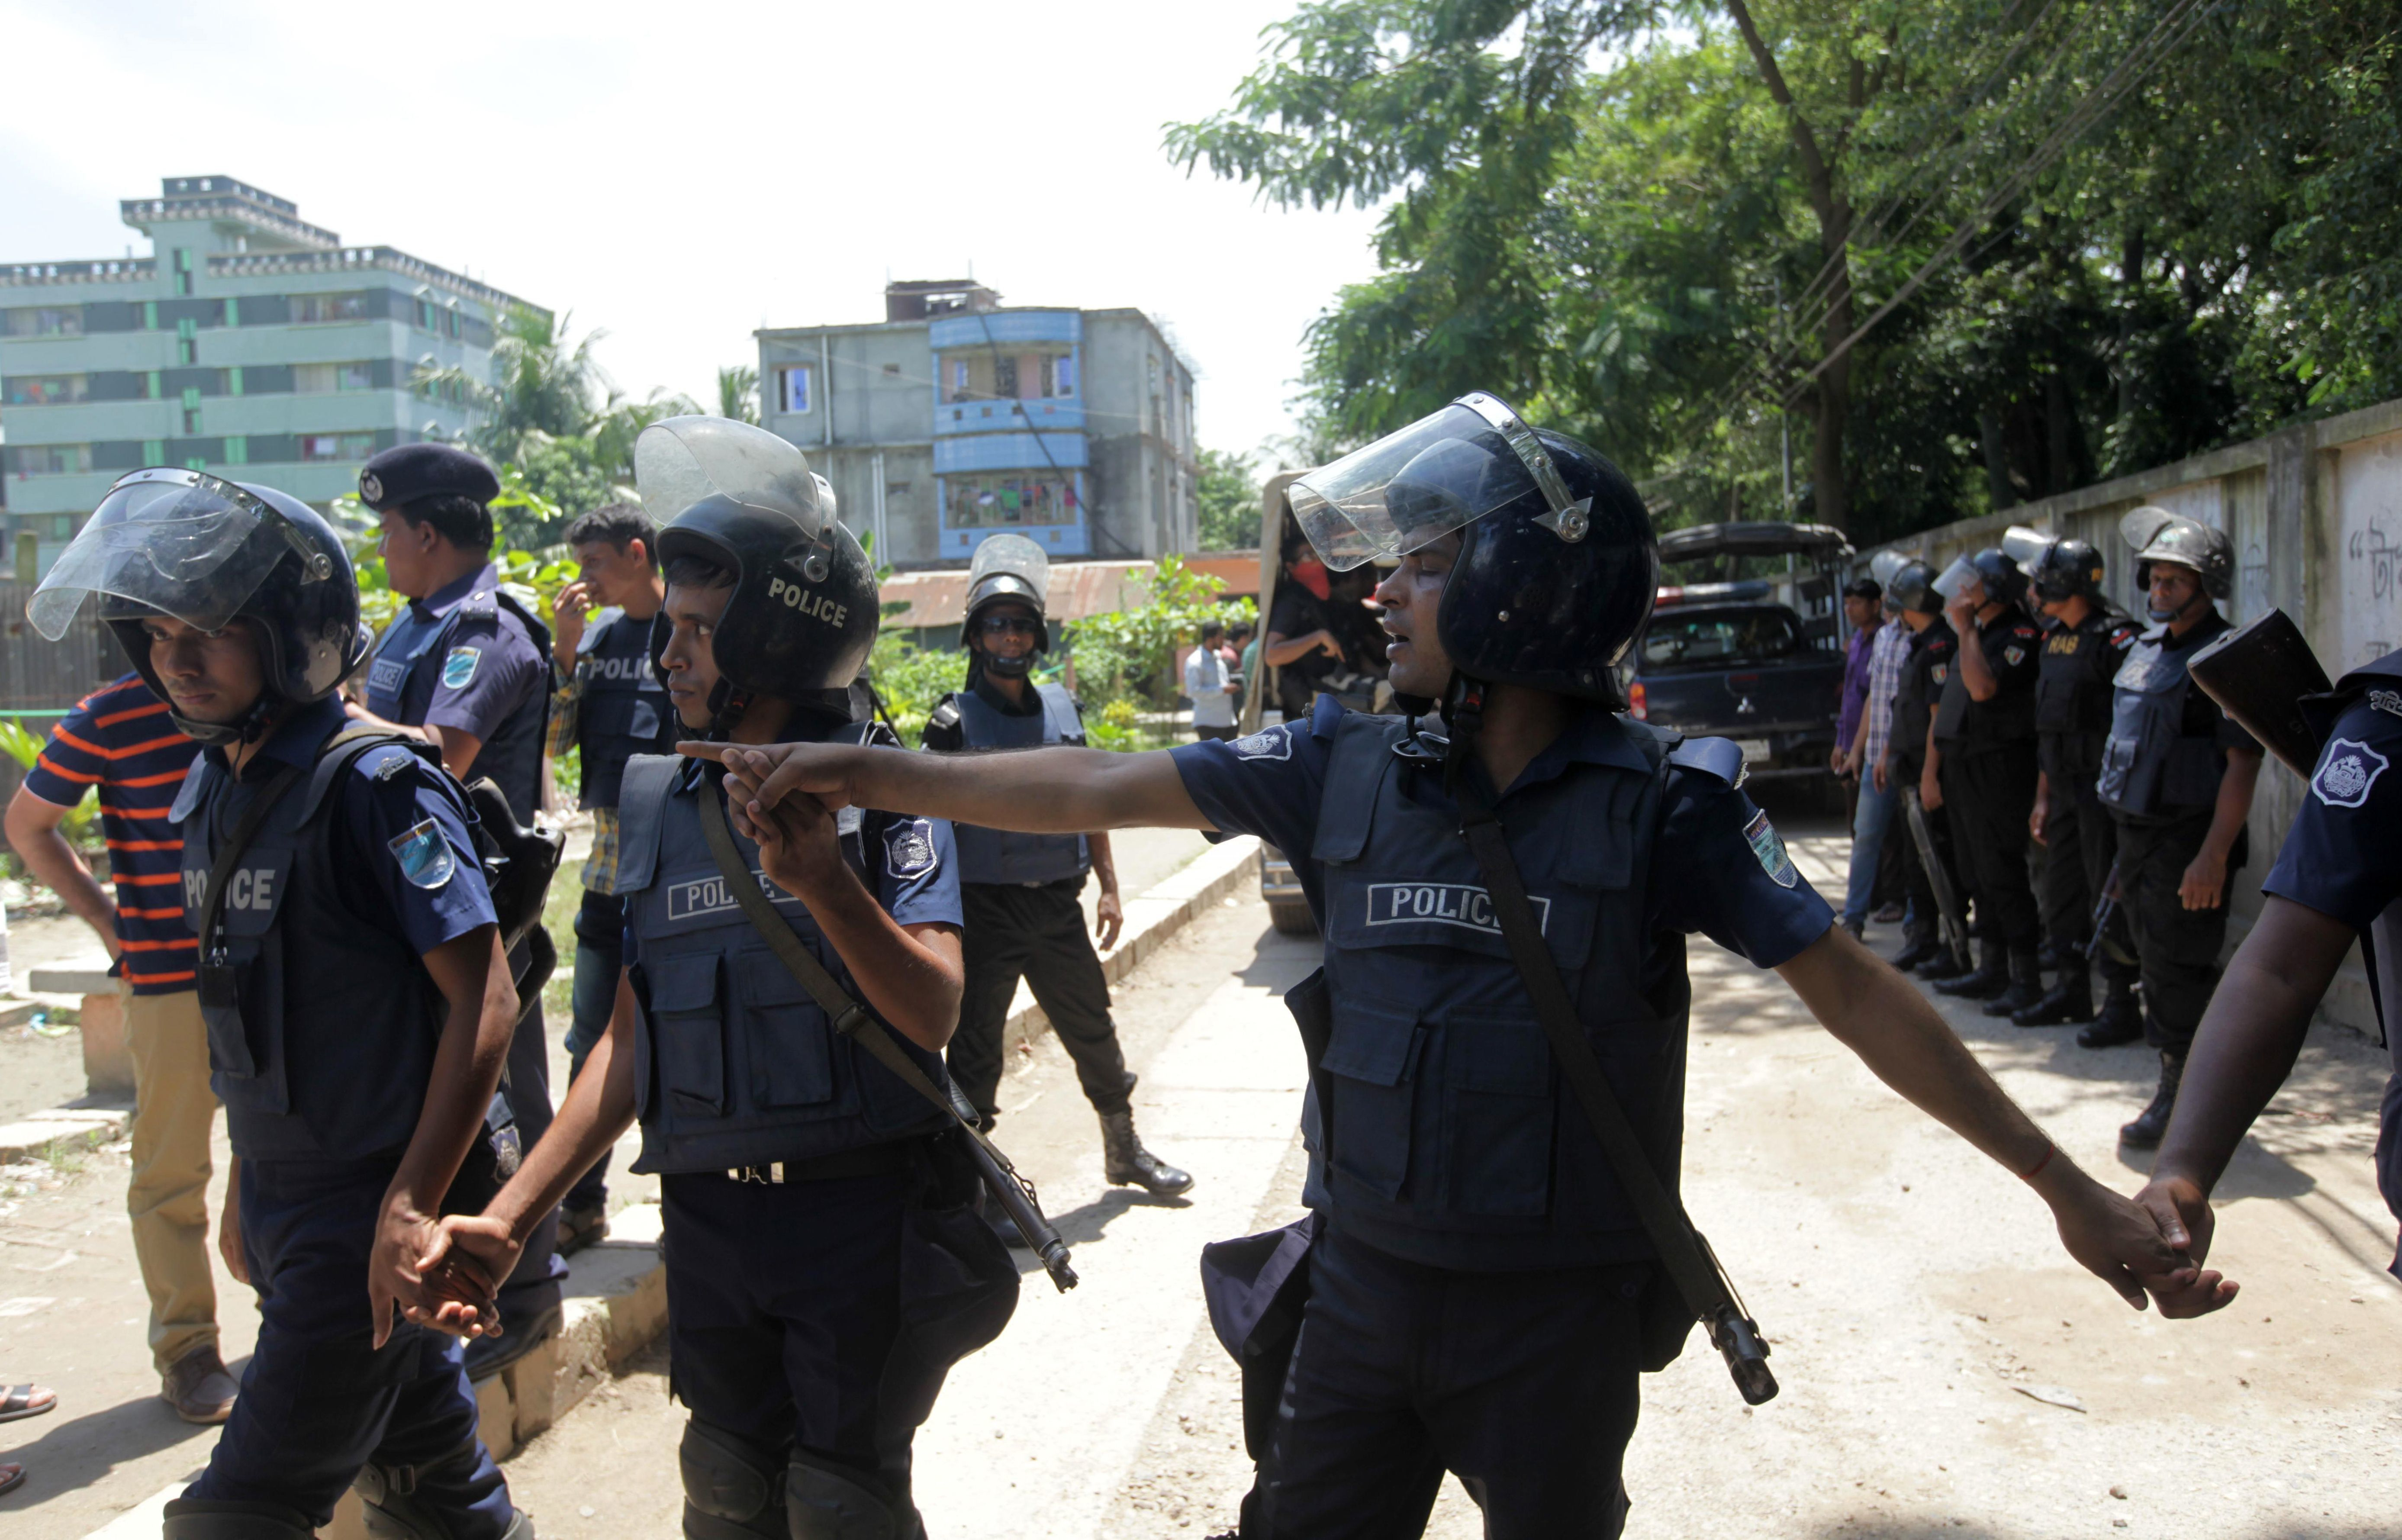 Bangladesh police stand guard at the scene of an operation to storm a militant hideout in Narayanganj, some 25 kms south of Dhaka on August 27, 2016. Bangladesh police stormed a militant hideout outside Dhaka August 27, shooting dead three Islamist extremists, including the suspected mastermind of a horrific attack on a cafe that killed 22 mostly foreign hostages last month. The three bodies were retrieved after police staged an hour-long gun battle with extremists in Narayanganj, a city 25 kilometres (16 miles) south of Dhaka, officers said.  / AFP / STR        (Photo credit should read STR/AFP/Getty Images)